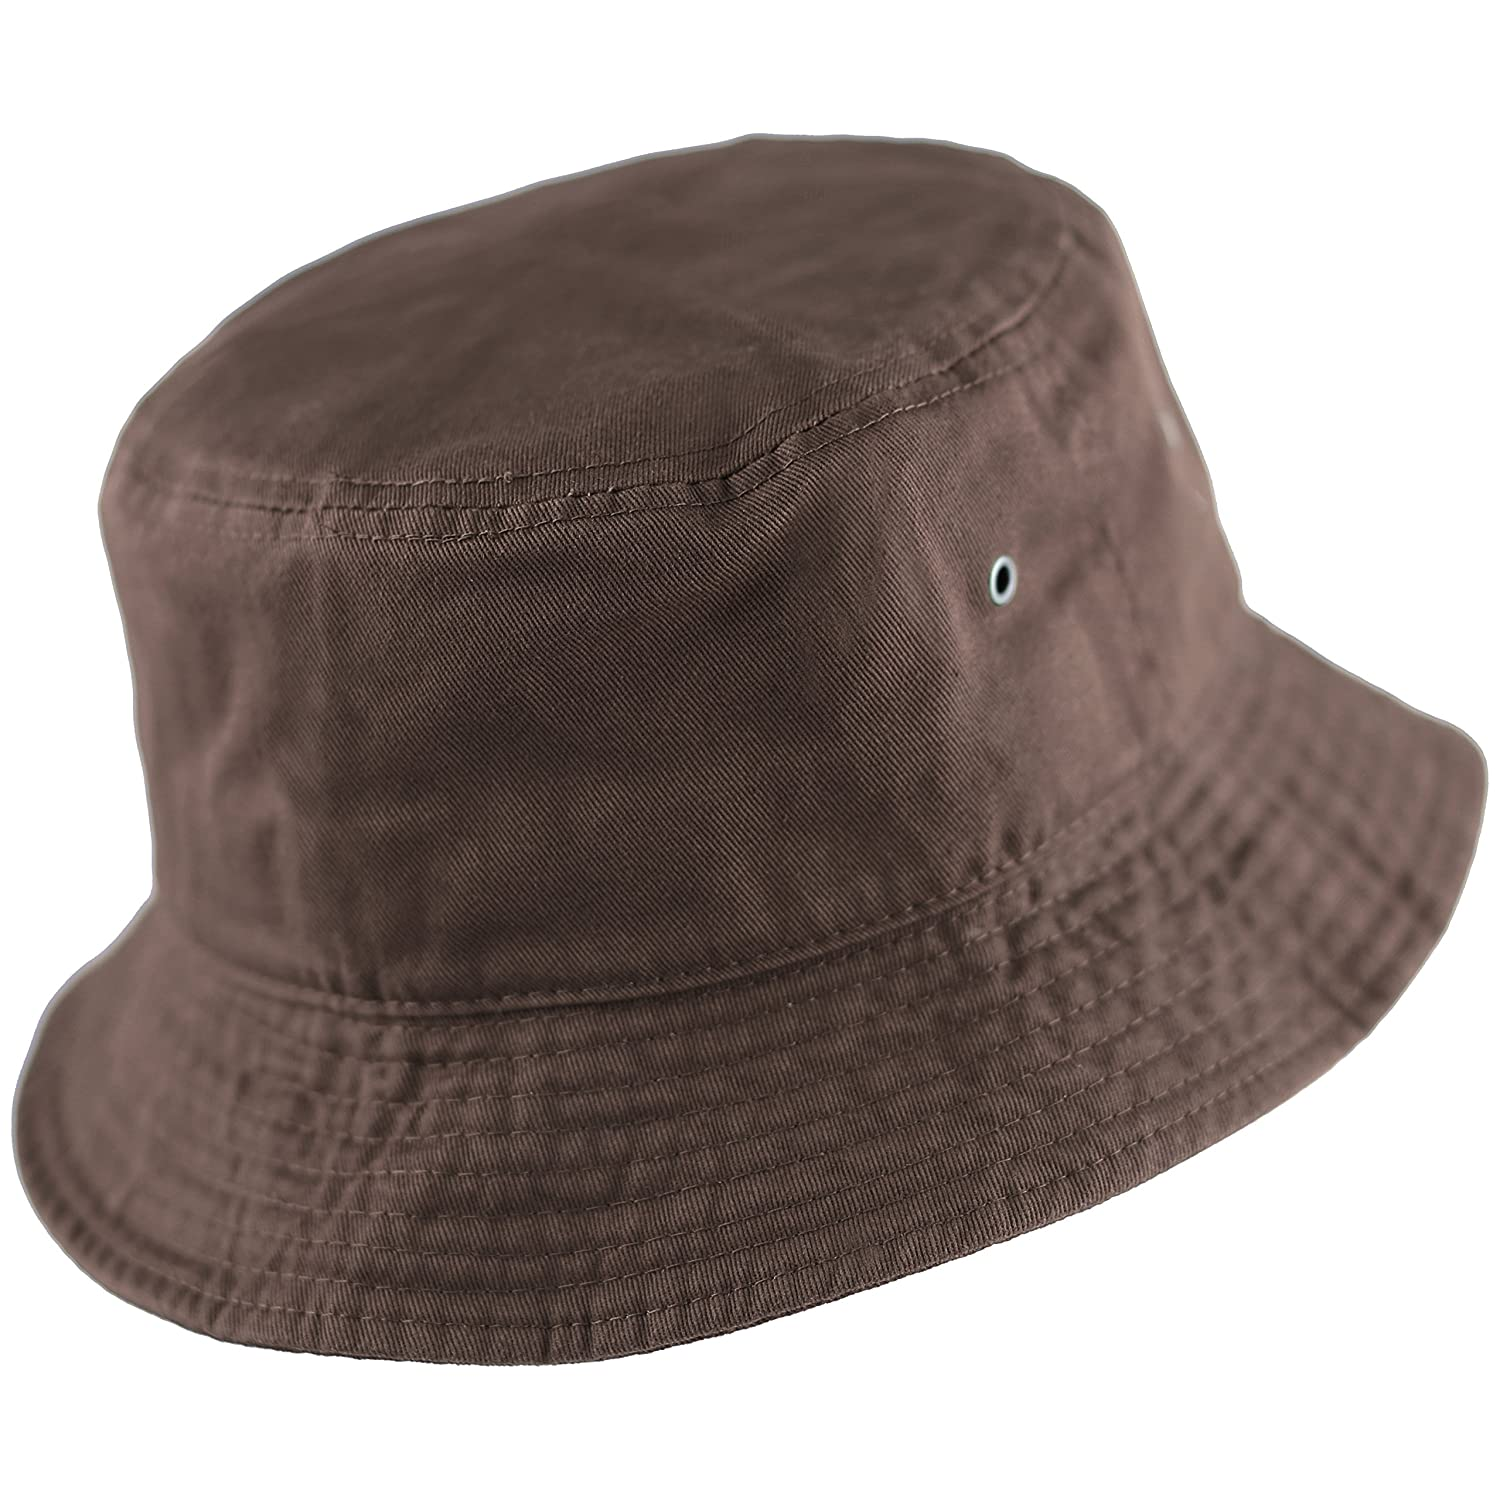 86a535adc26 THE HAT DEPOT 300N Unisex 100% Cotton Packable Summer Travel Bucket Hat  larger image